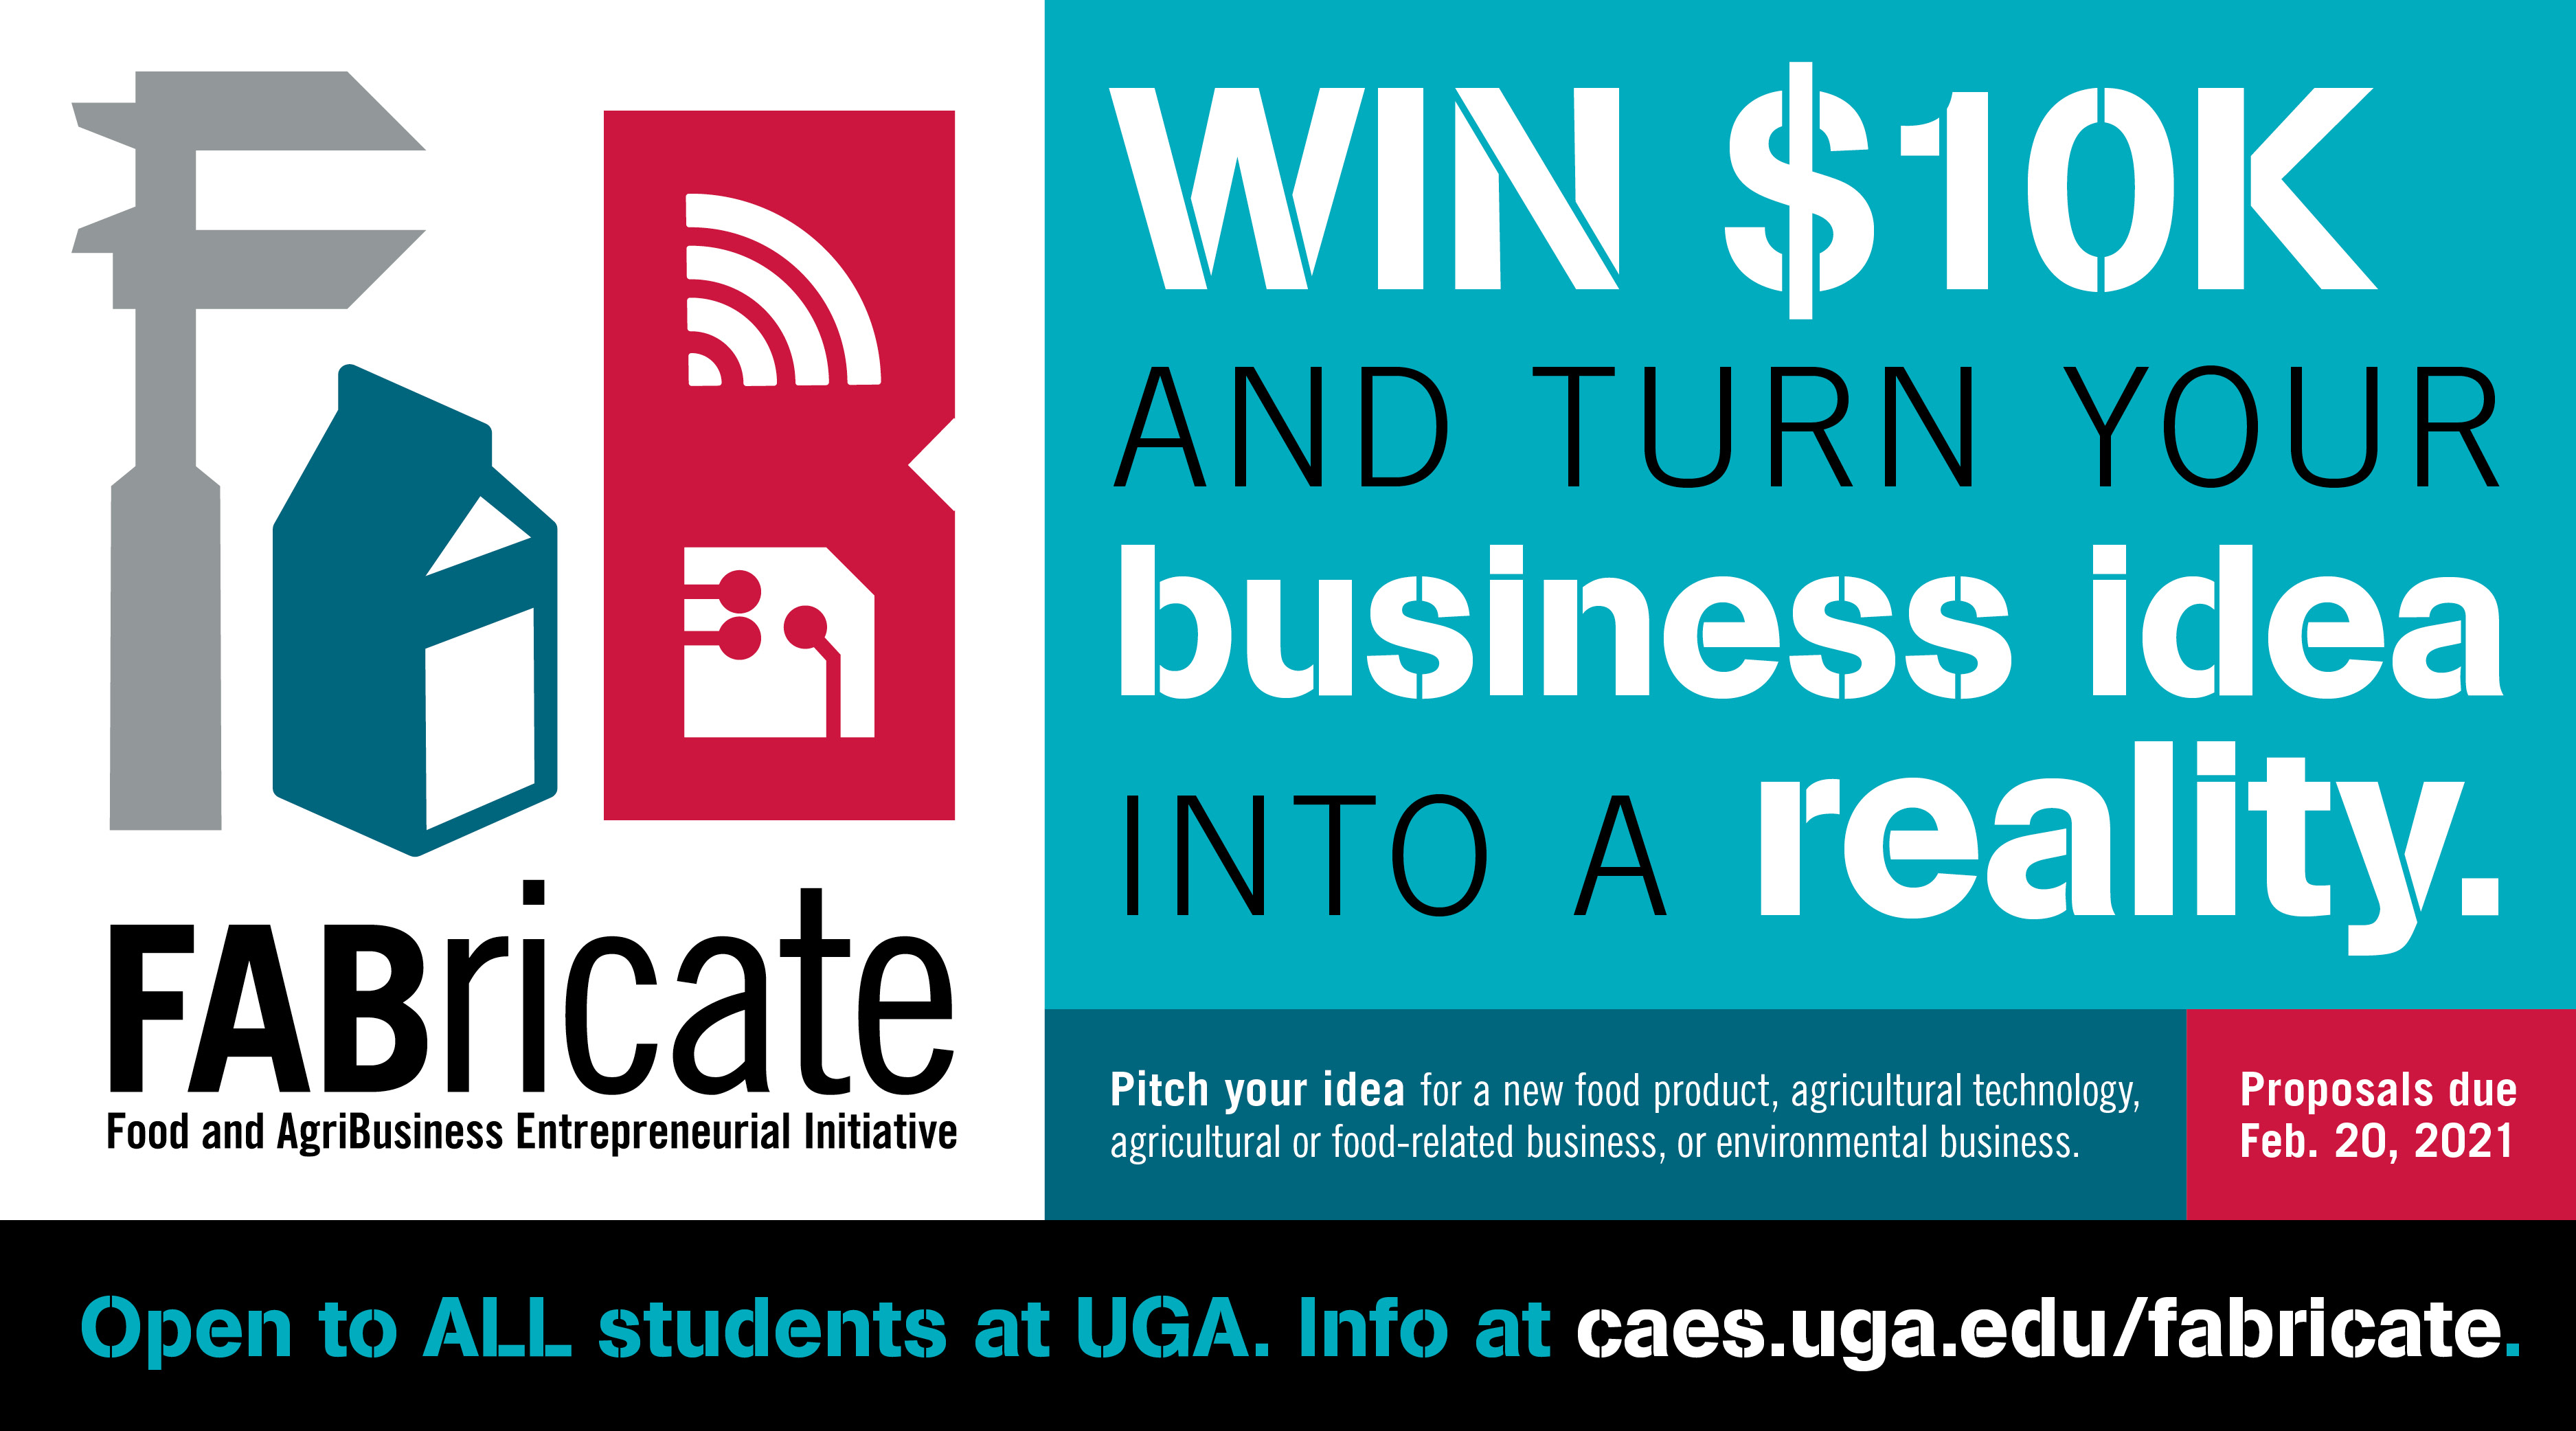 FABricate is an entrepreneurial pitch contest hosted by the UGA College of Agricultural and Environmental Sciences. Proposals are due Feb. 20 for the 2021 contest.